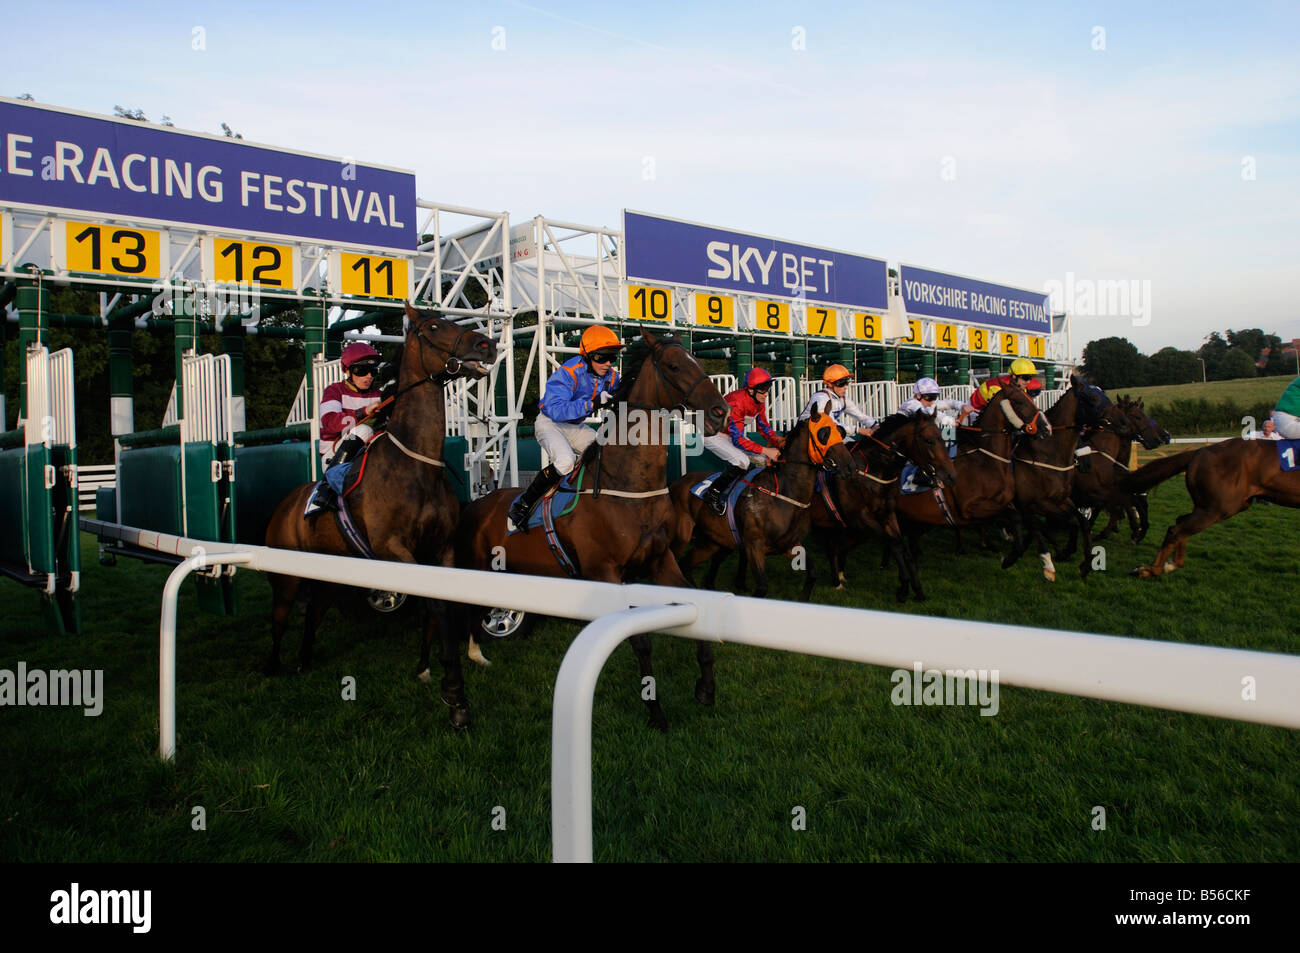 The start of a 5 furlong sprint thoroughbred horse race on the Westwood, Beverley, UK - Stock Image